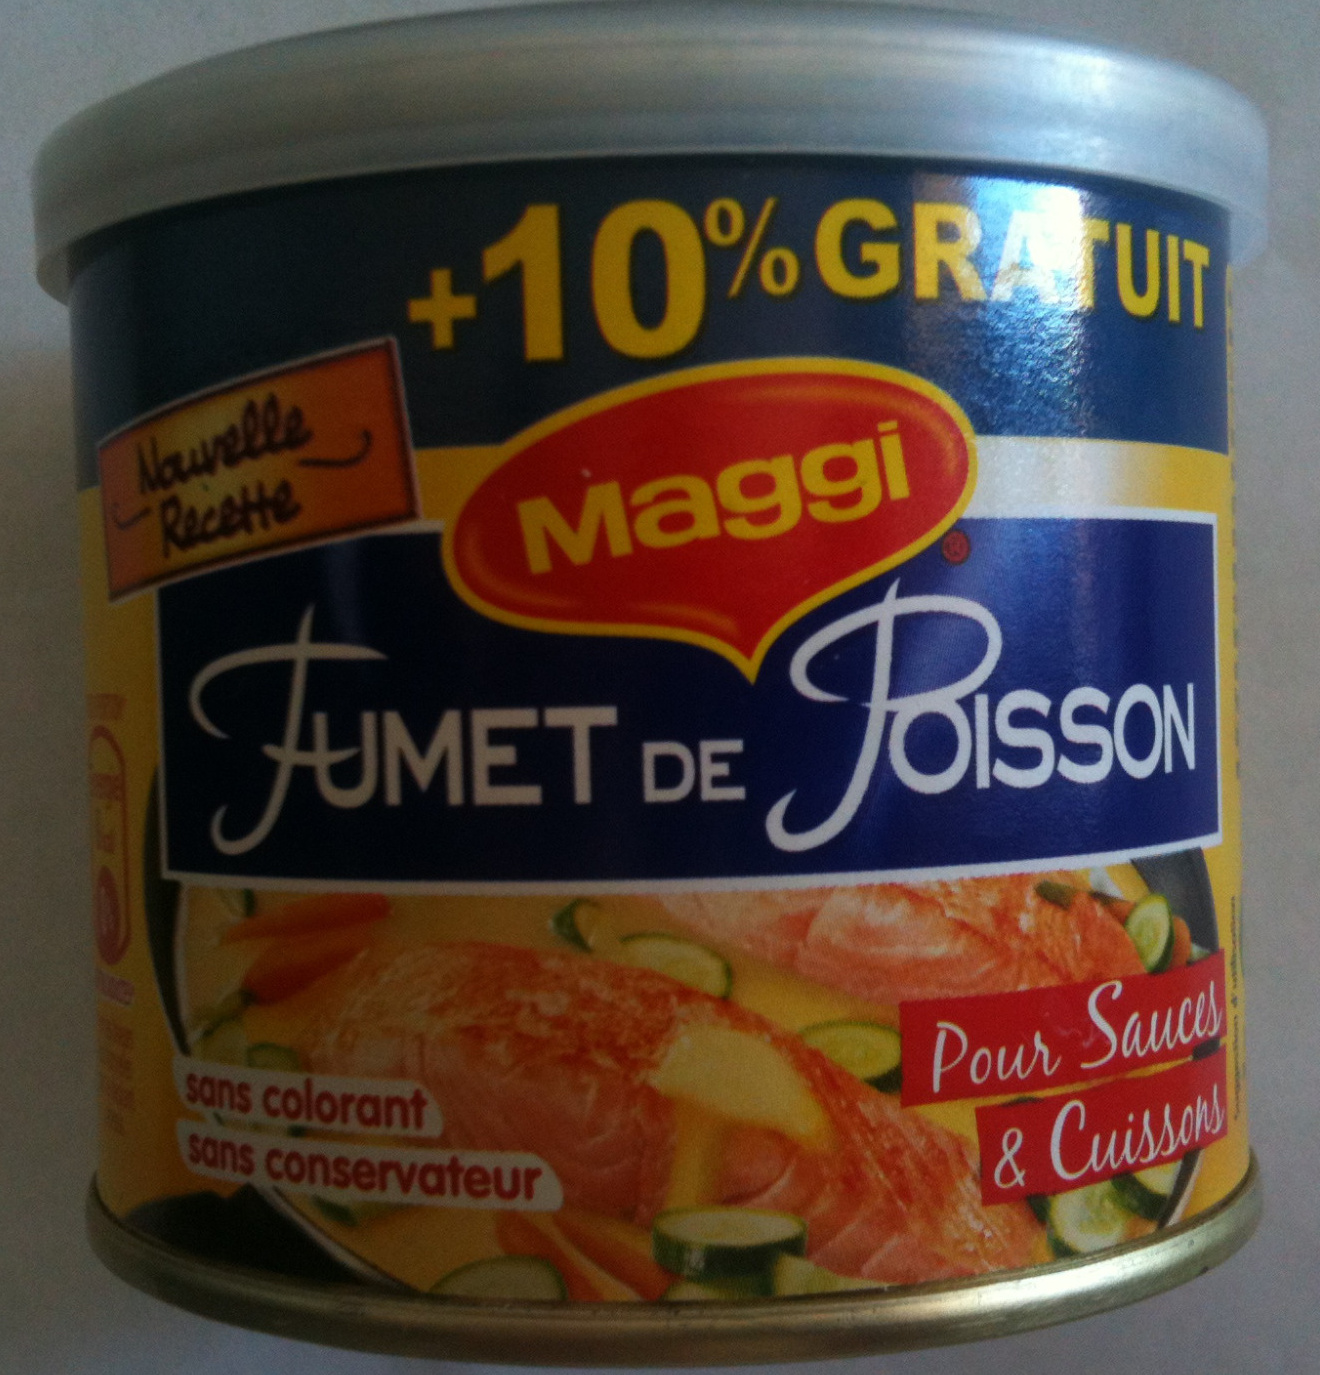 Fumet de Poisson - Product